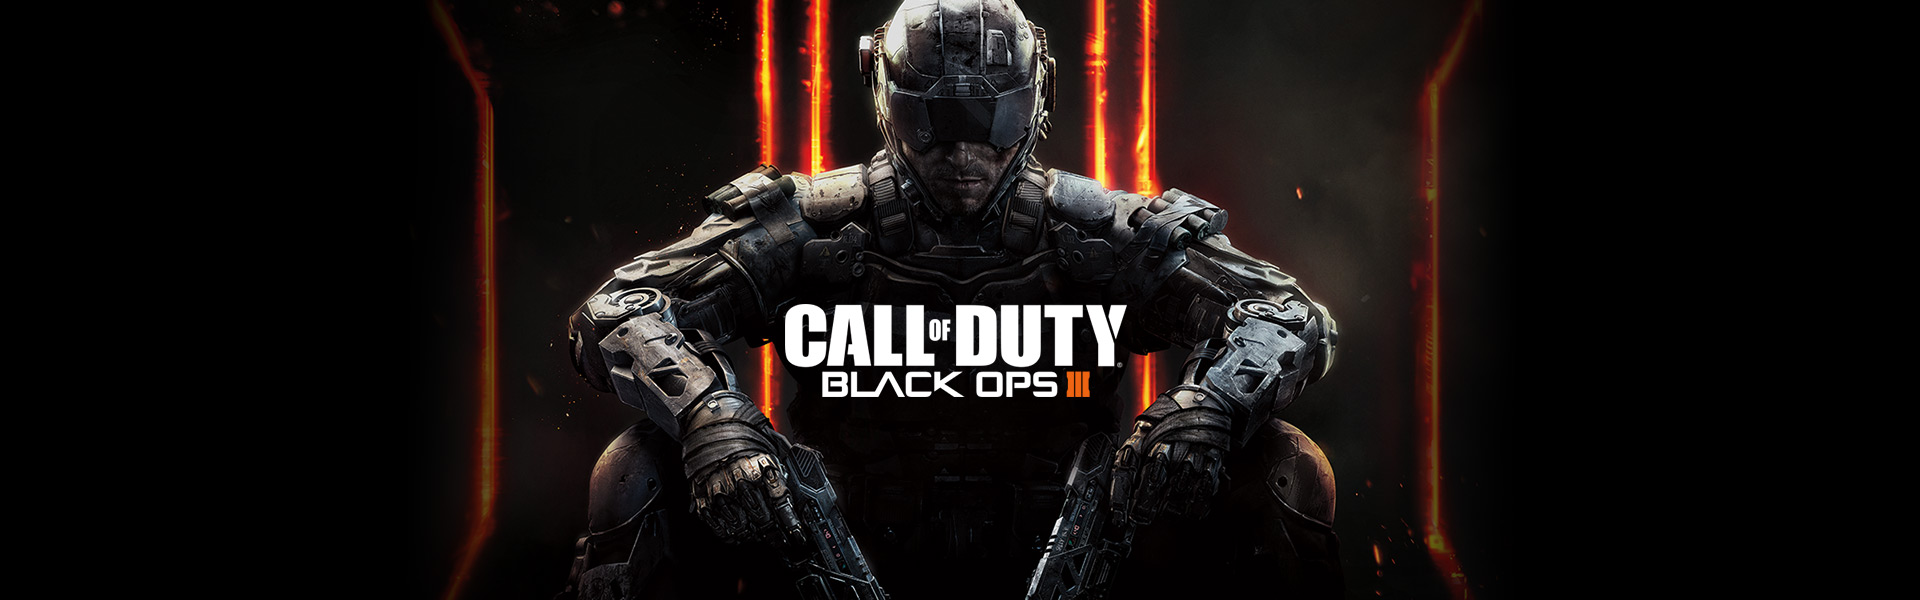 Call of Duty Black Ops 3 logo with future looking soldier holding two  pistols facing forward